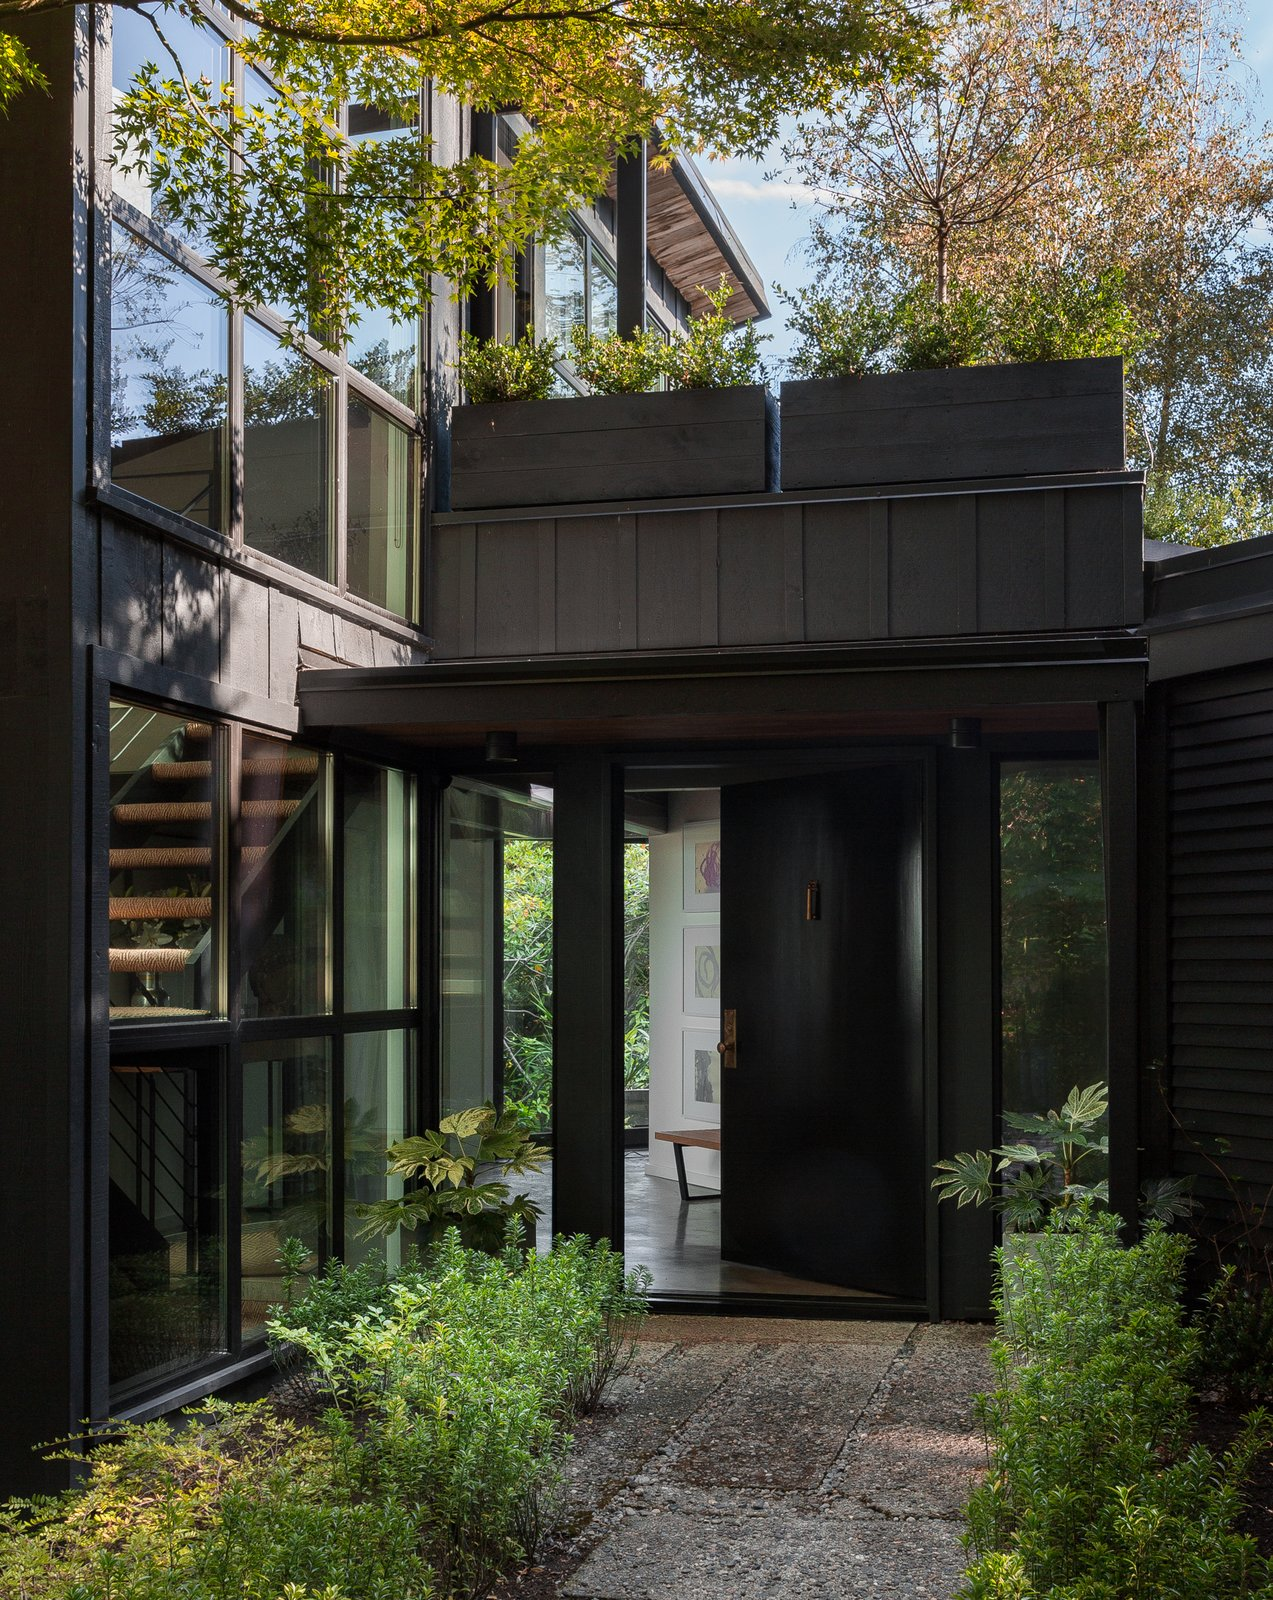 Montlake House by Mowery Marsh Architects - Hawley Adelbert Dudley's original midcentury home is renovated and renewed with luxe modern style